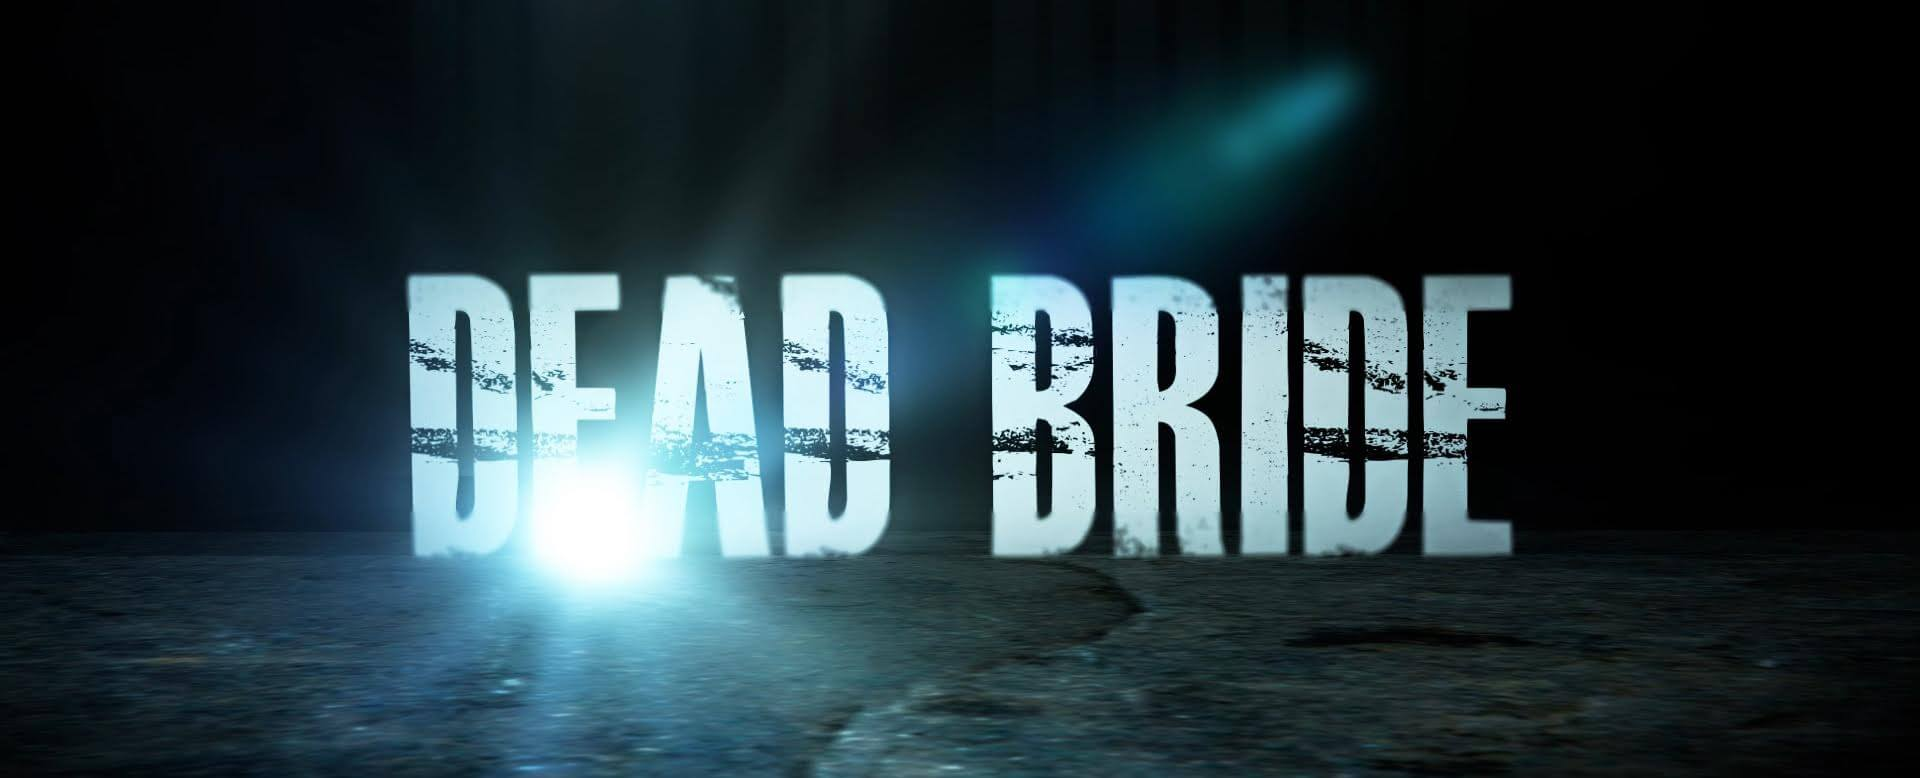 Dead bride 1 - Exclusive Trailer and Teaser Poster Debut for Dead Bride